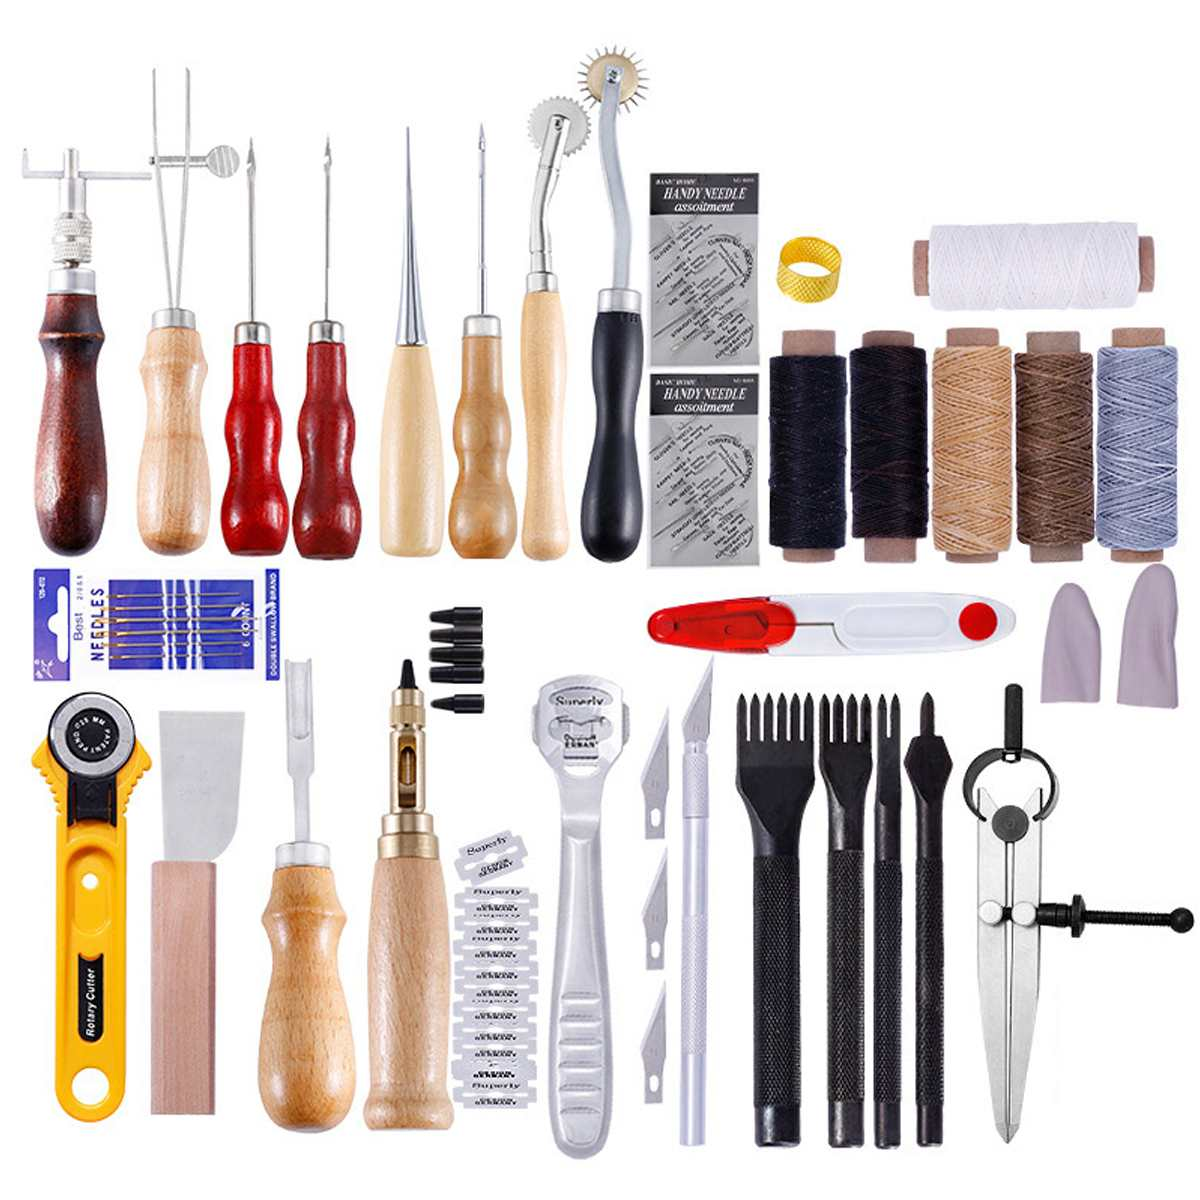 18PCS Leather Craft Tools Kit Set For Hand Stitching Sewing Punch Carving Work